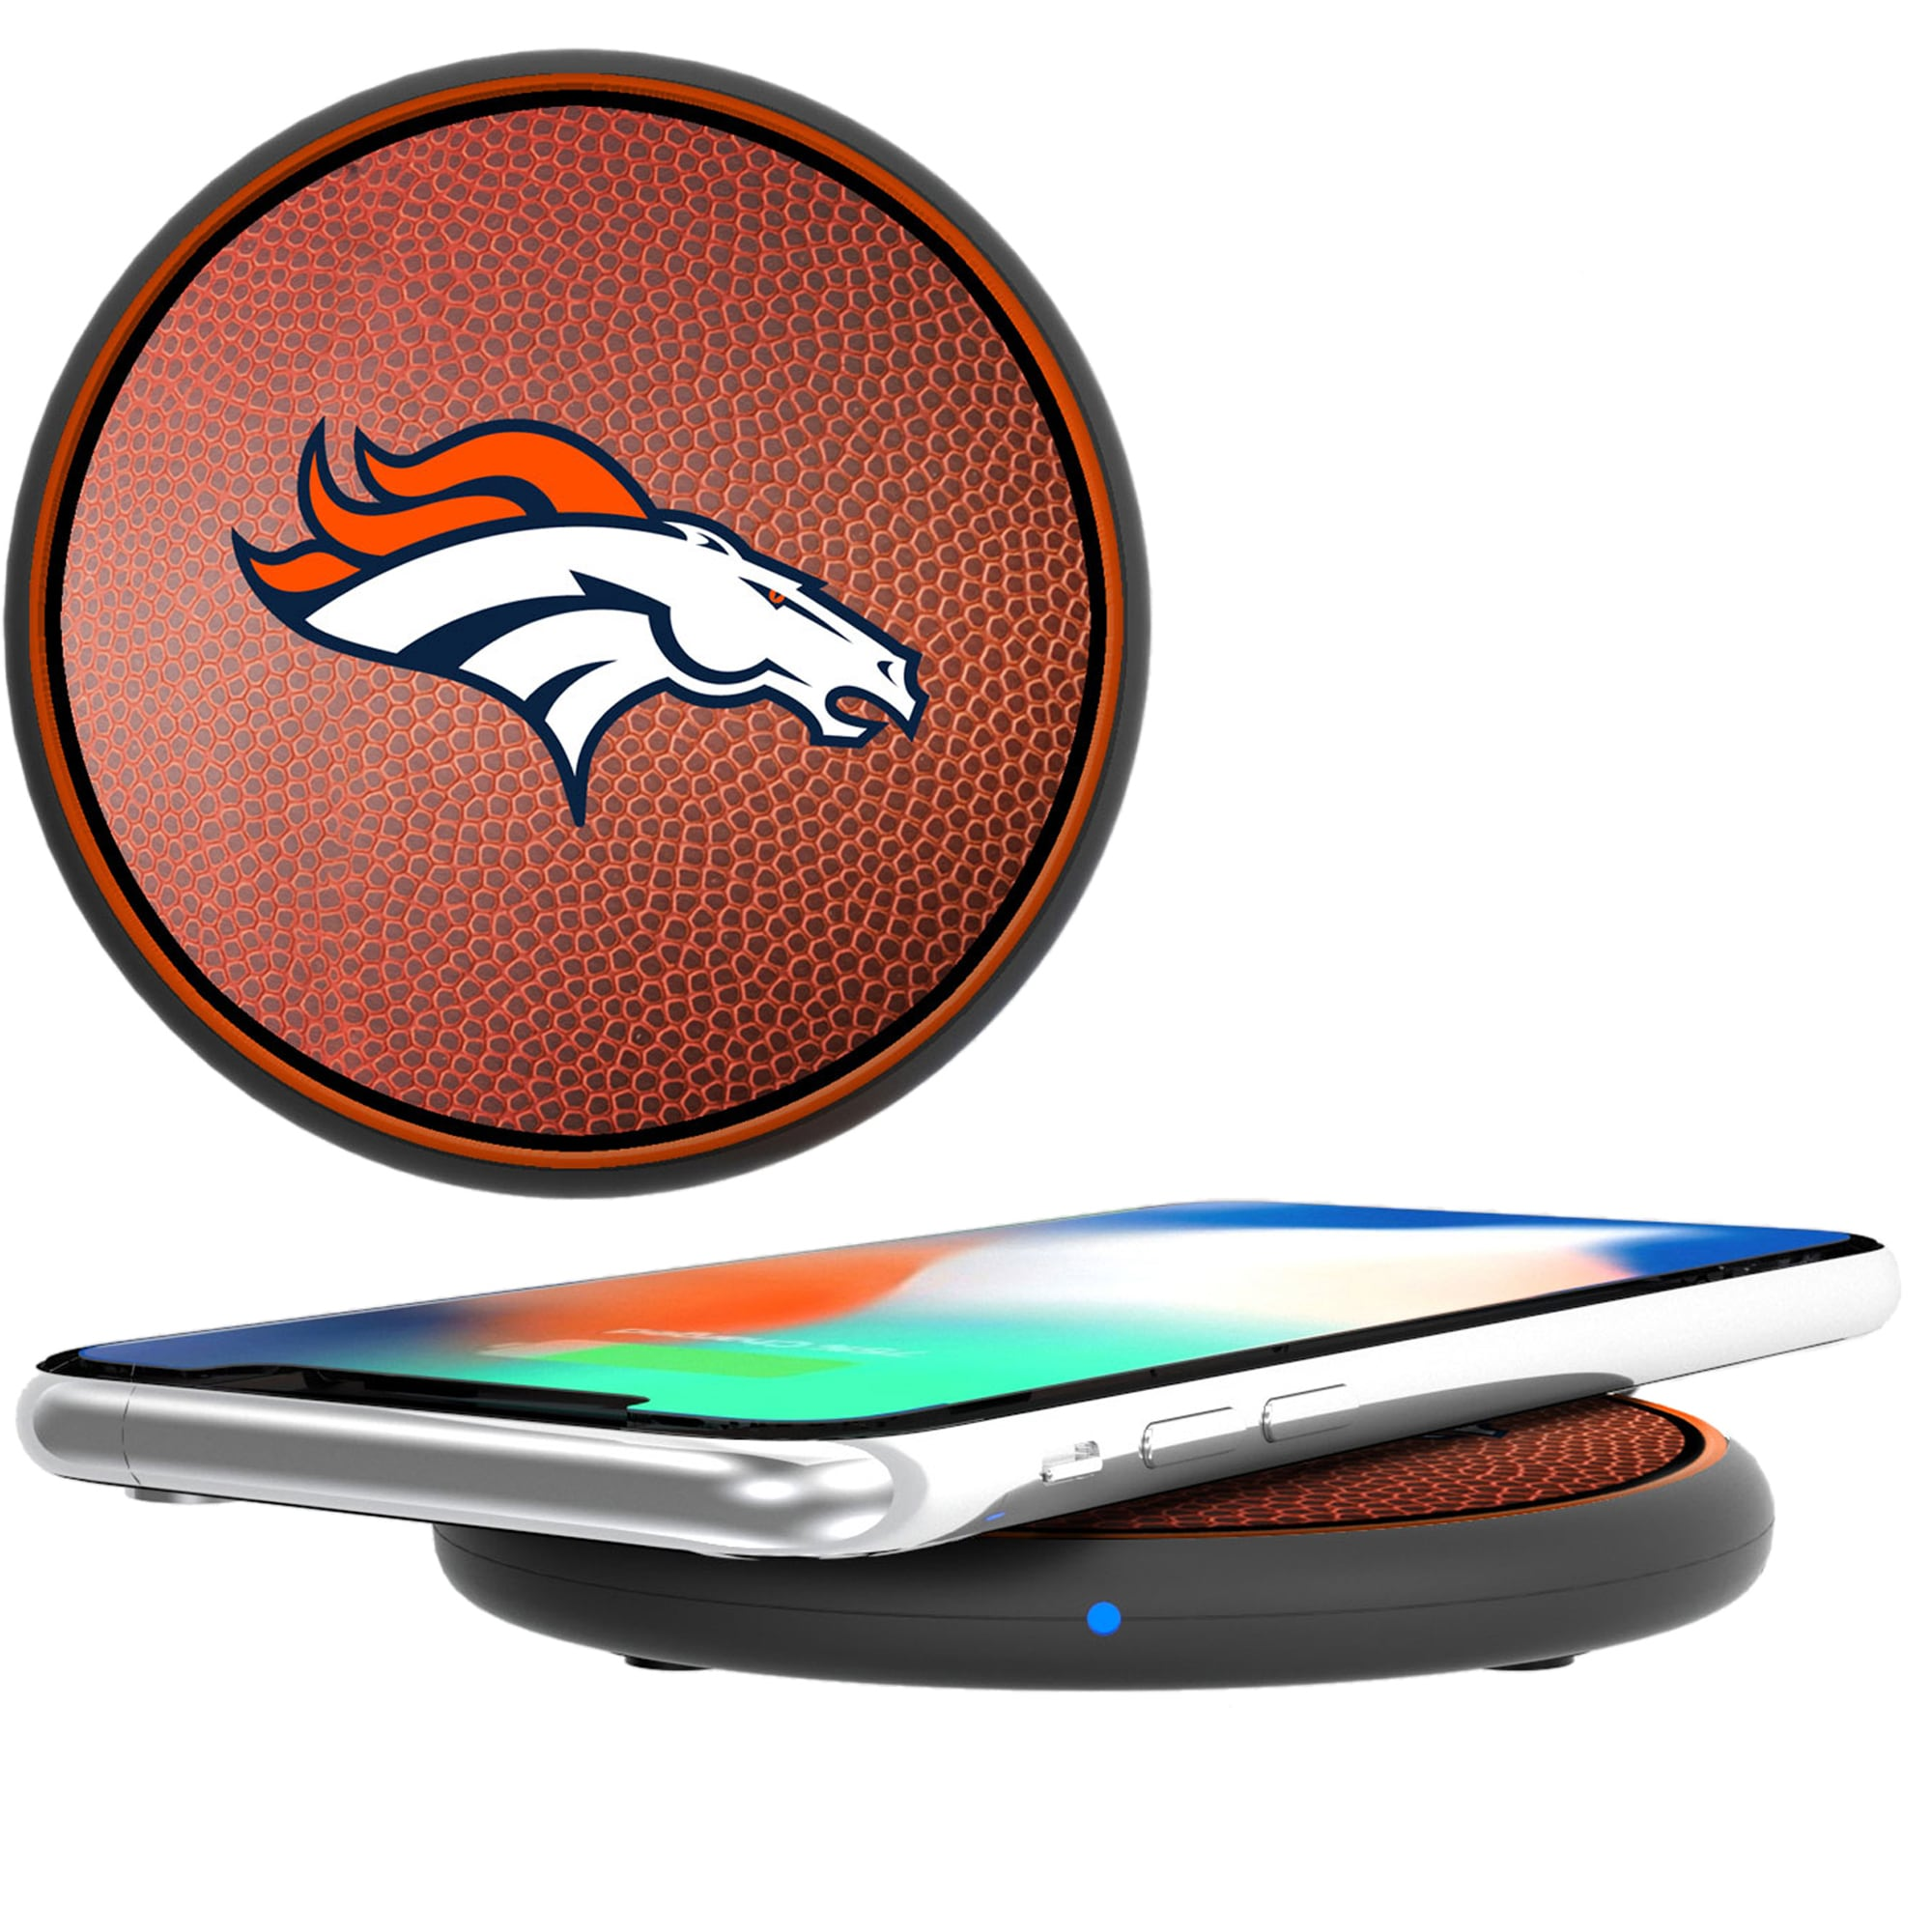 Denver Broncos Wireless Cell Phone Charger